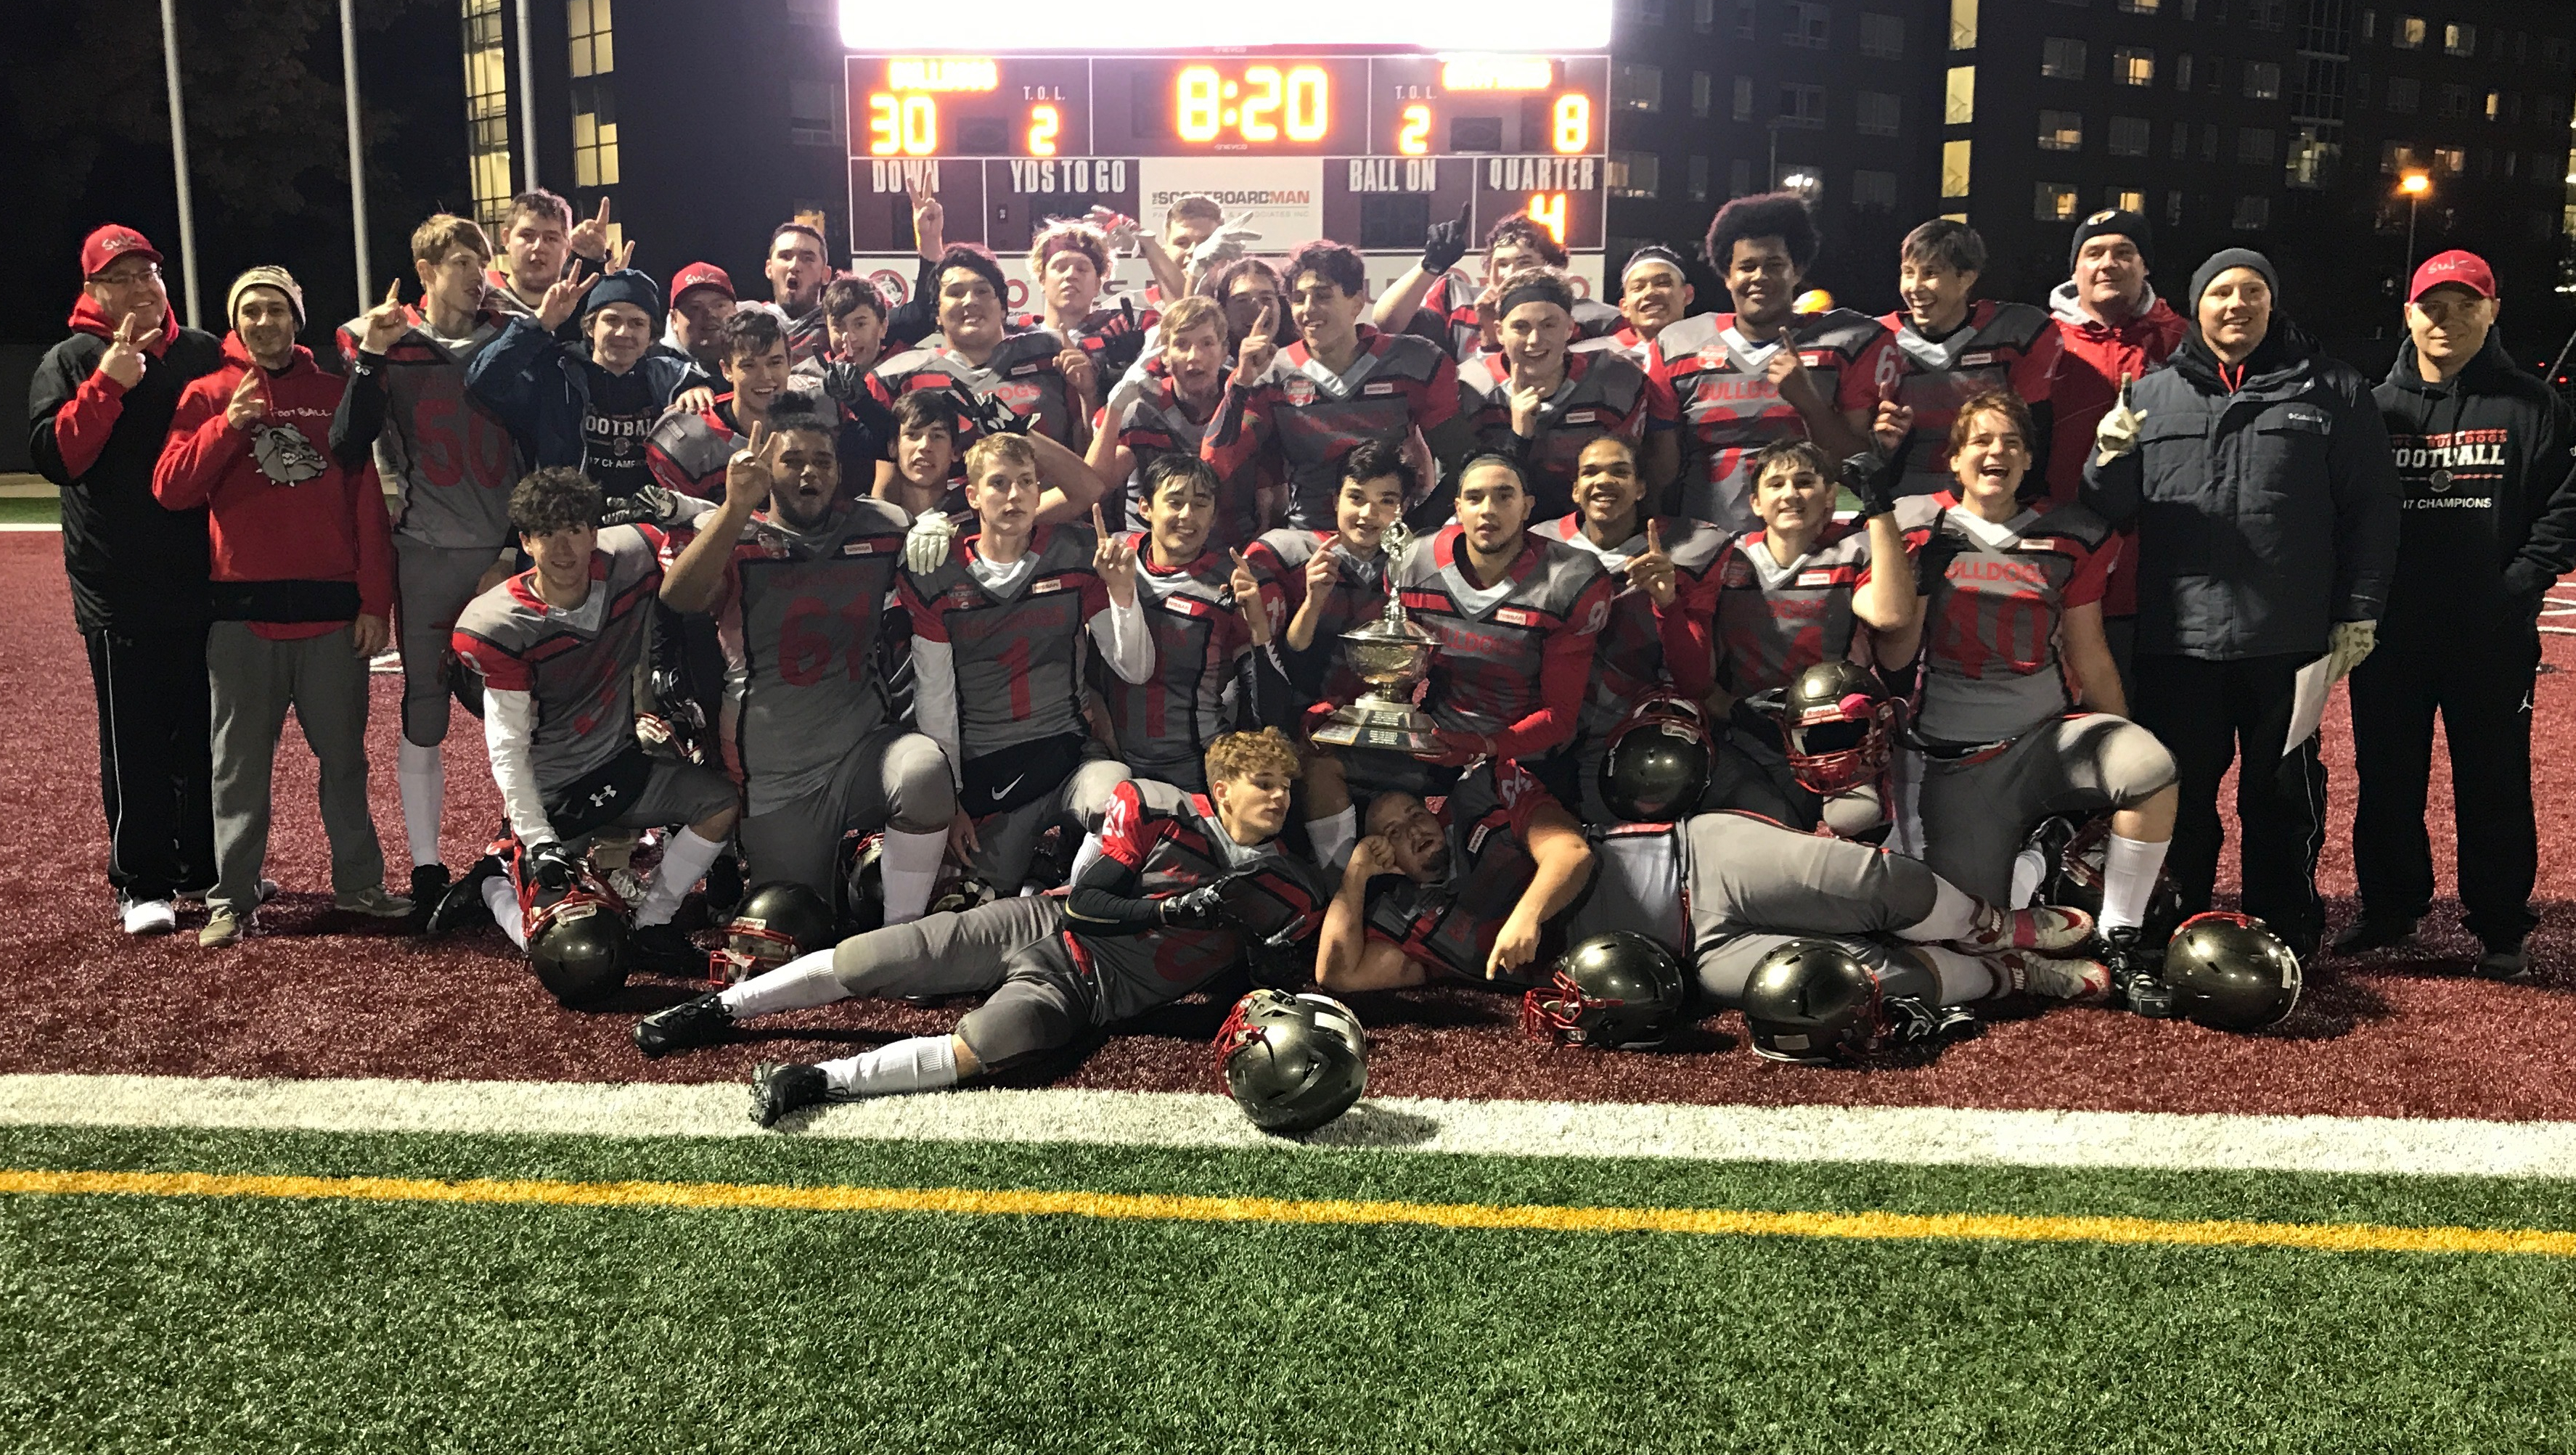 2018-19 HWIAC Senior Football Championship